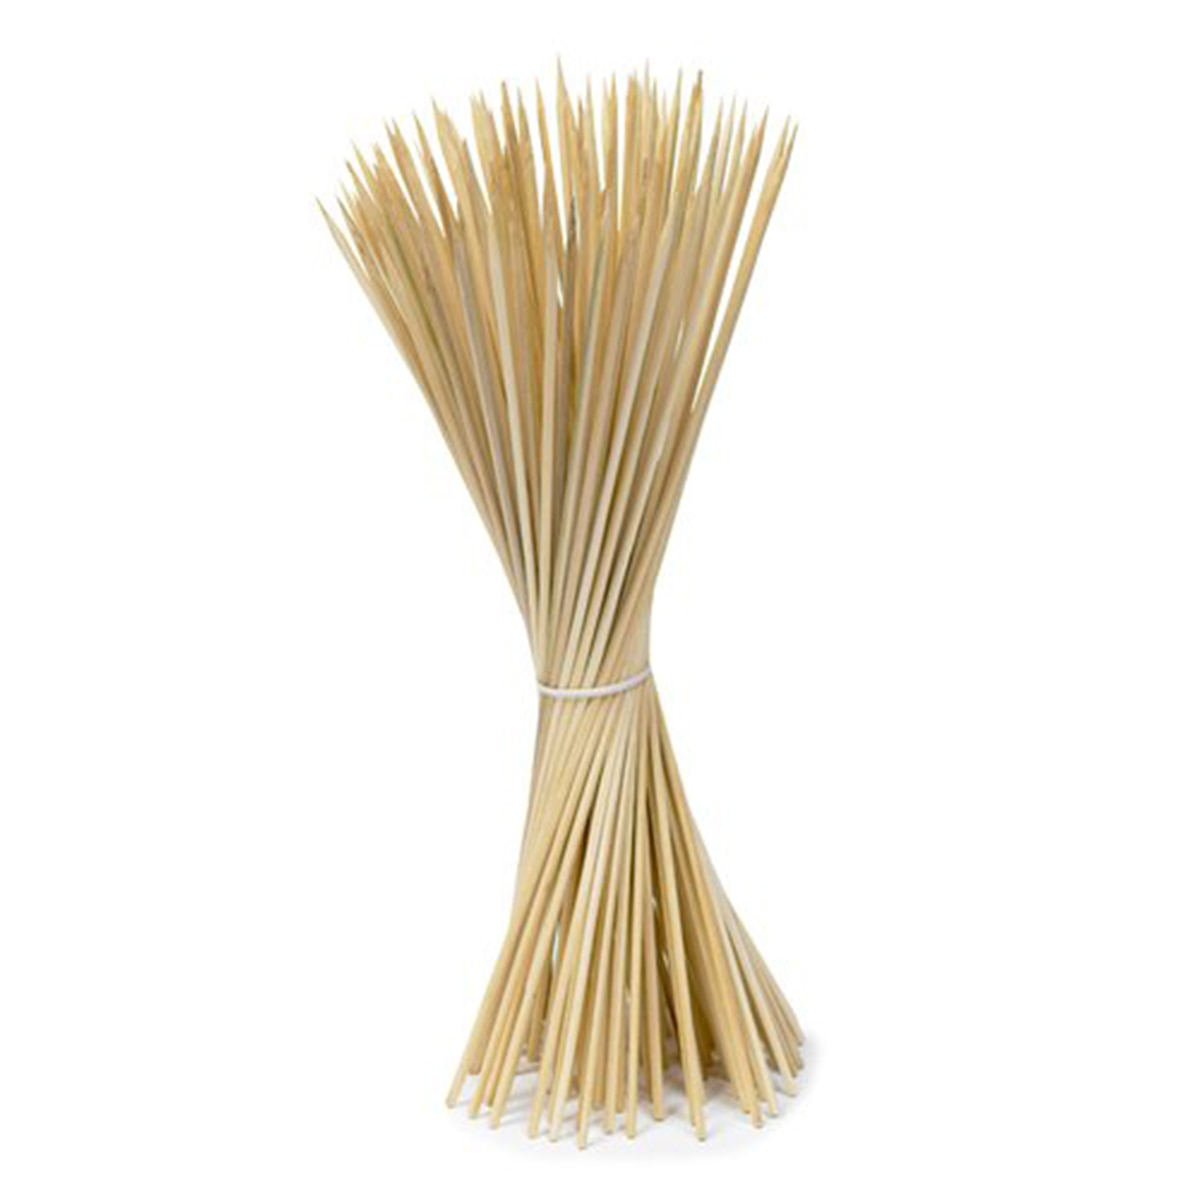 Bamboo Utensils Corn Skewers 100 pc Imusa